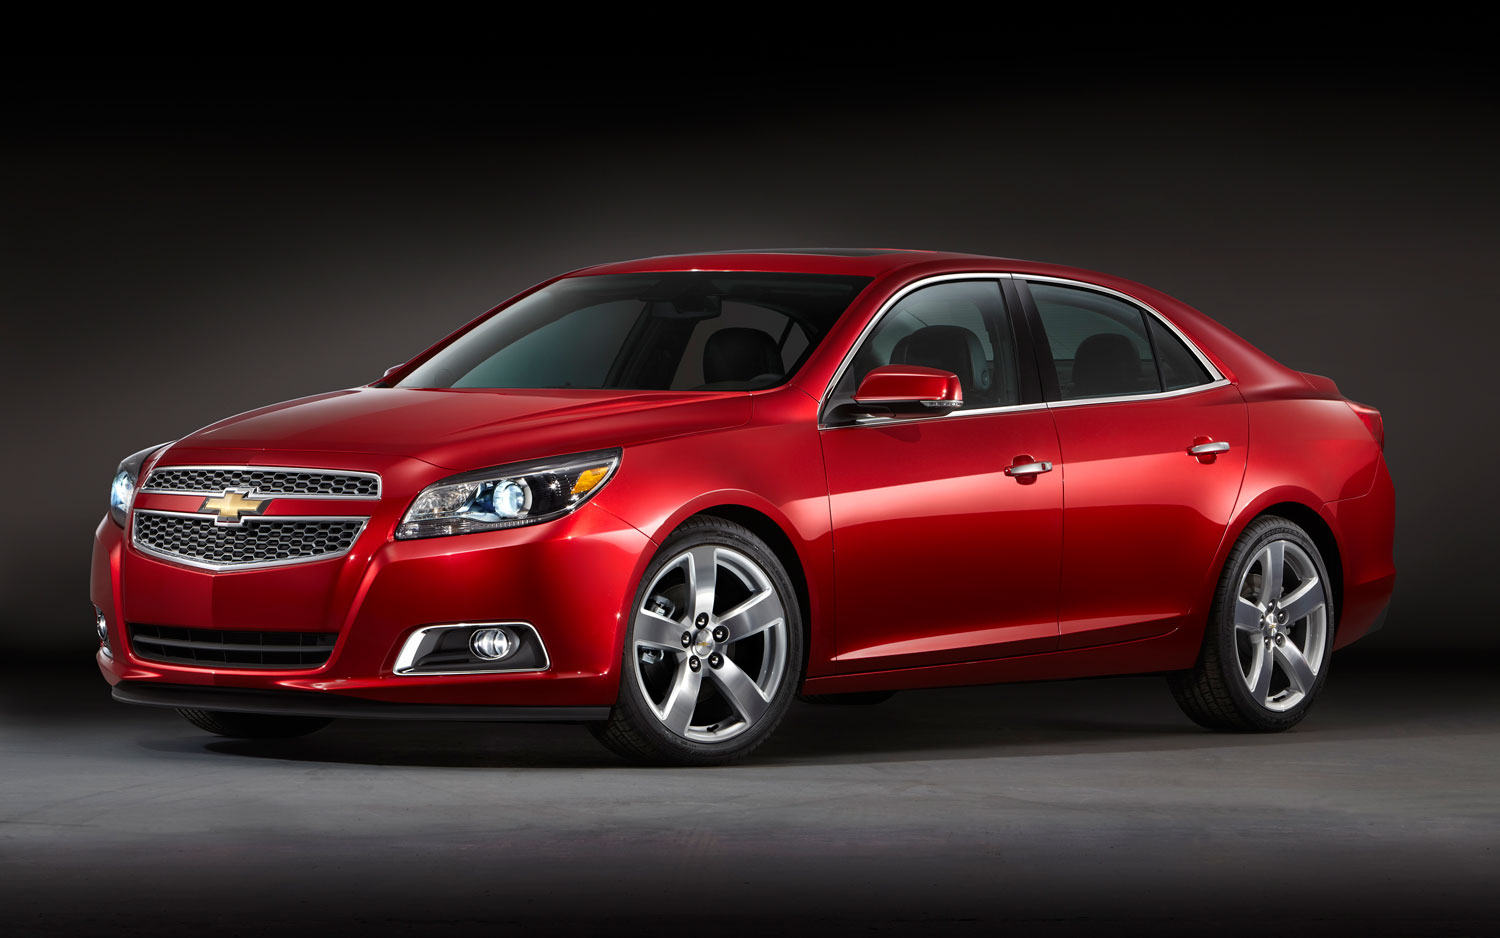 All Chevy chevy cars 2012 : Chevrolet's Plans for 2012-2014: New Vehicles, Fuel Economy, and ...